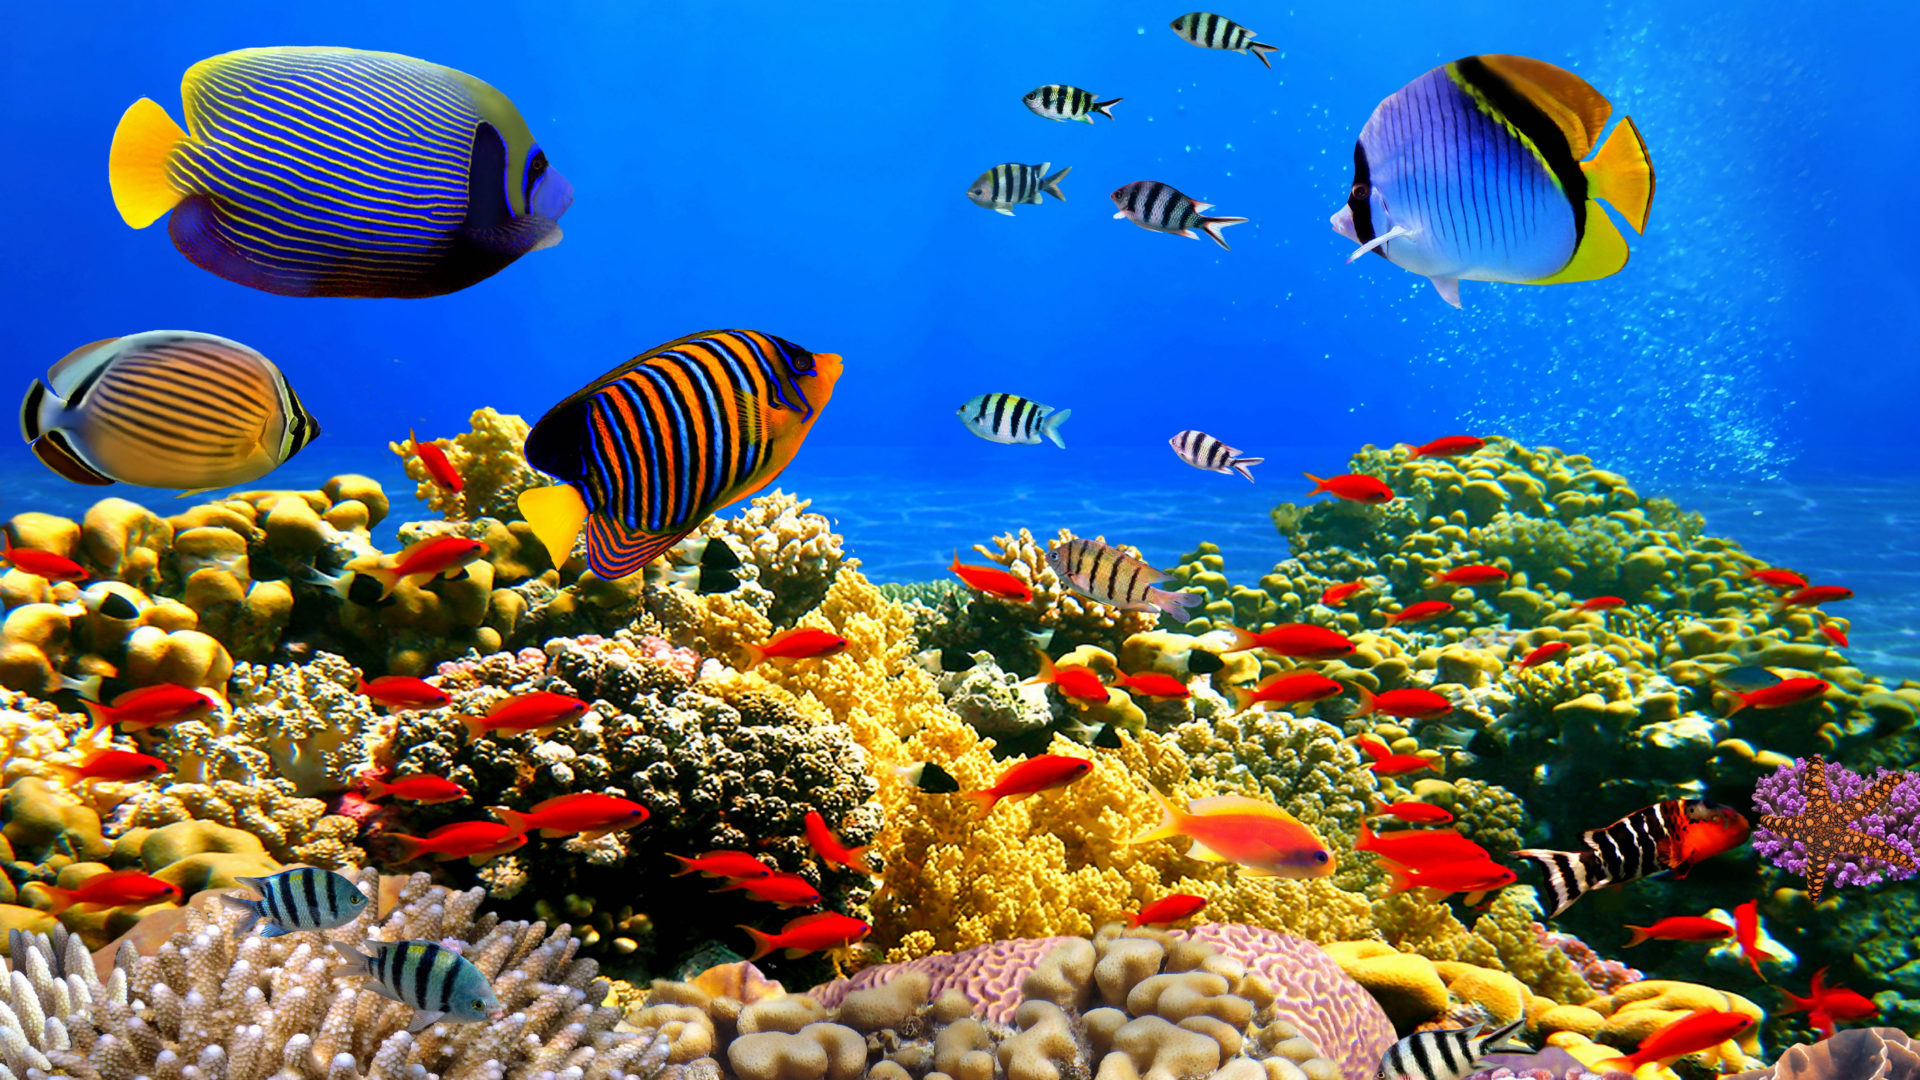 Fish Wallpaper Hd Underwater World Corals Tropical Colorful Fish Hd Desktop